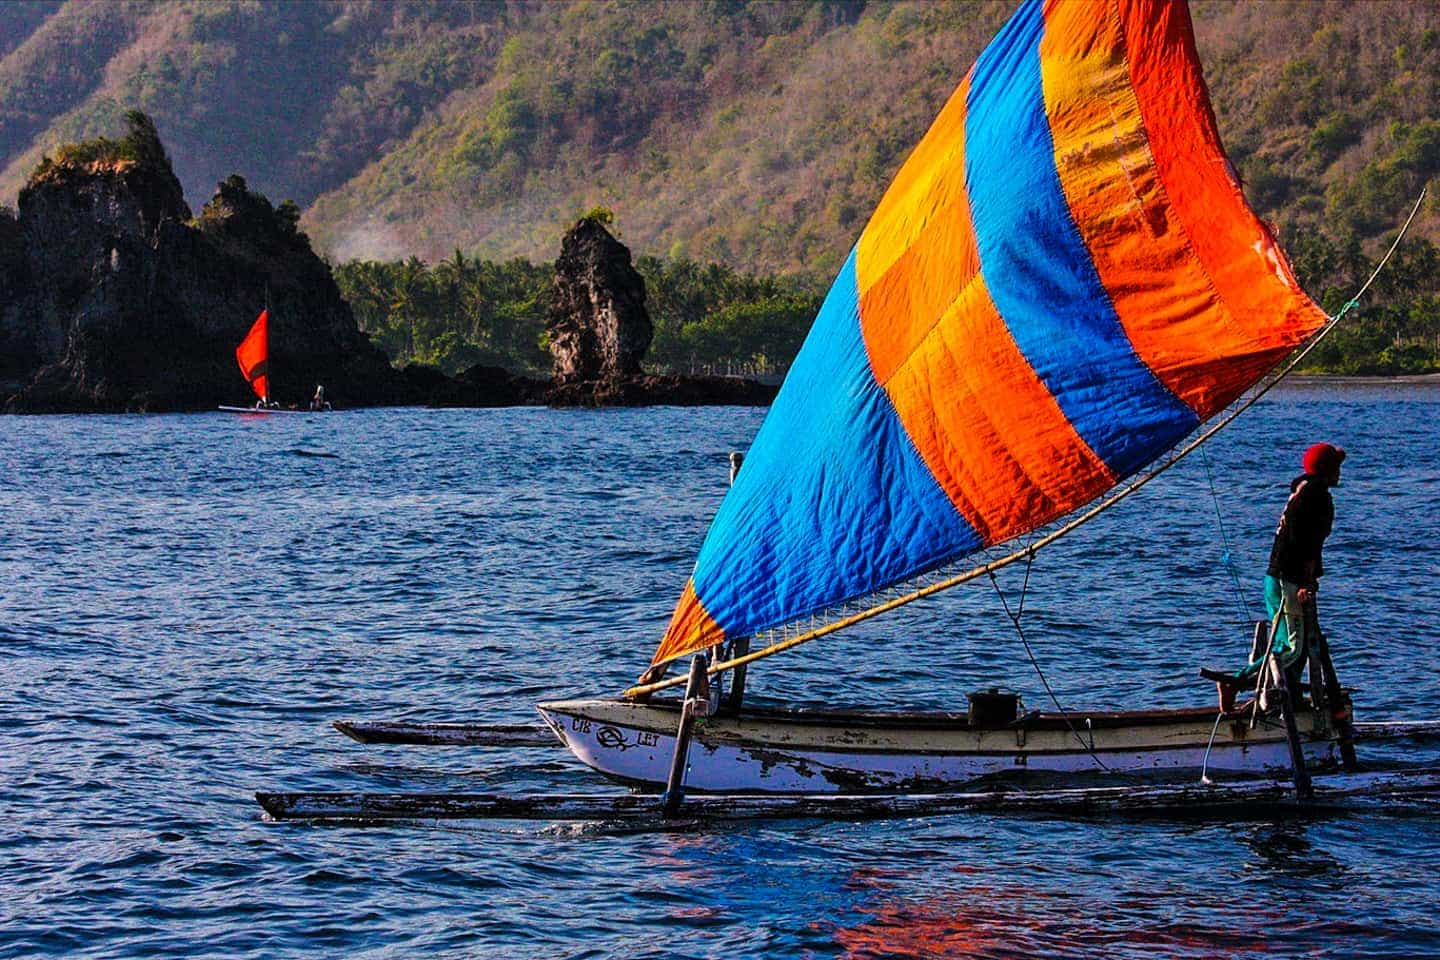 Location photos of beautiful Lombok Indonesia